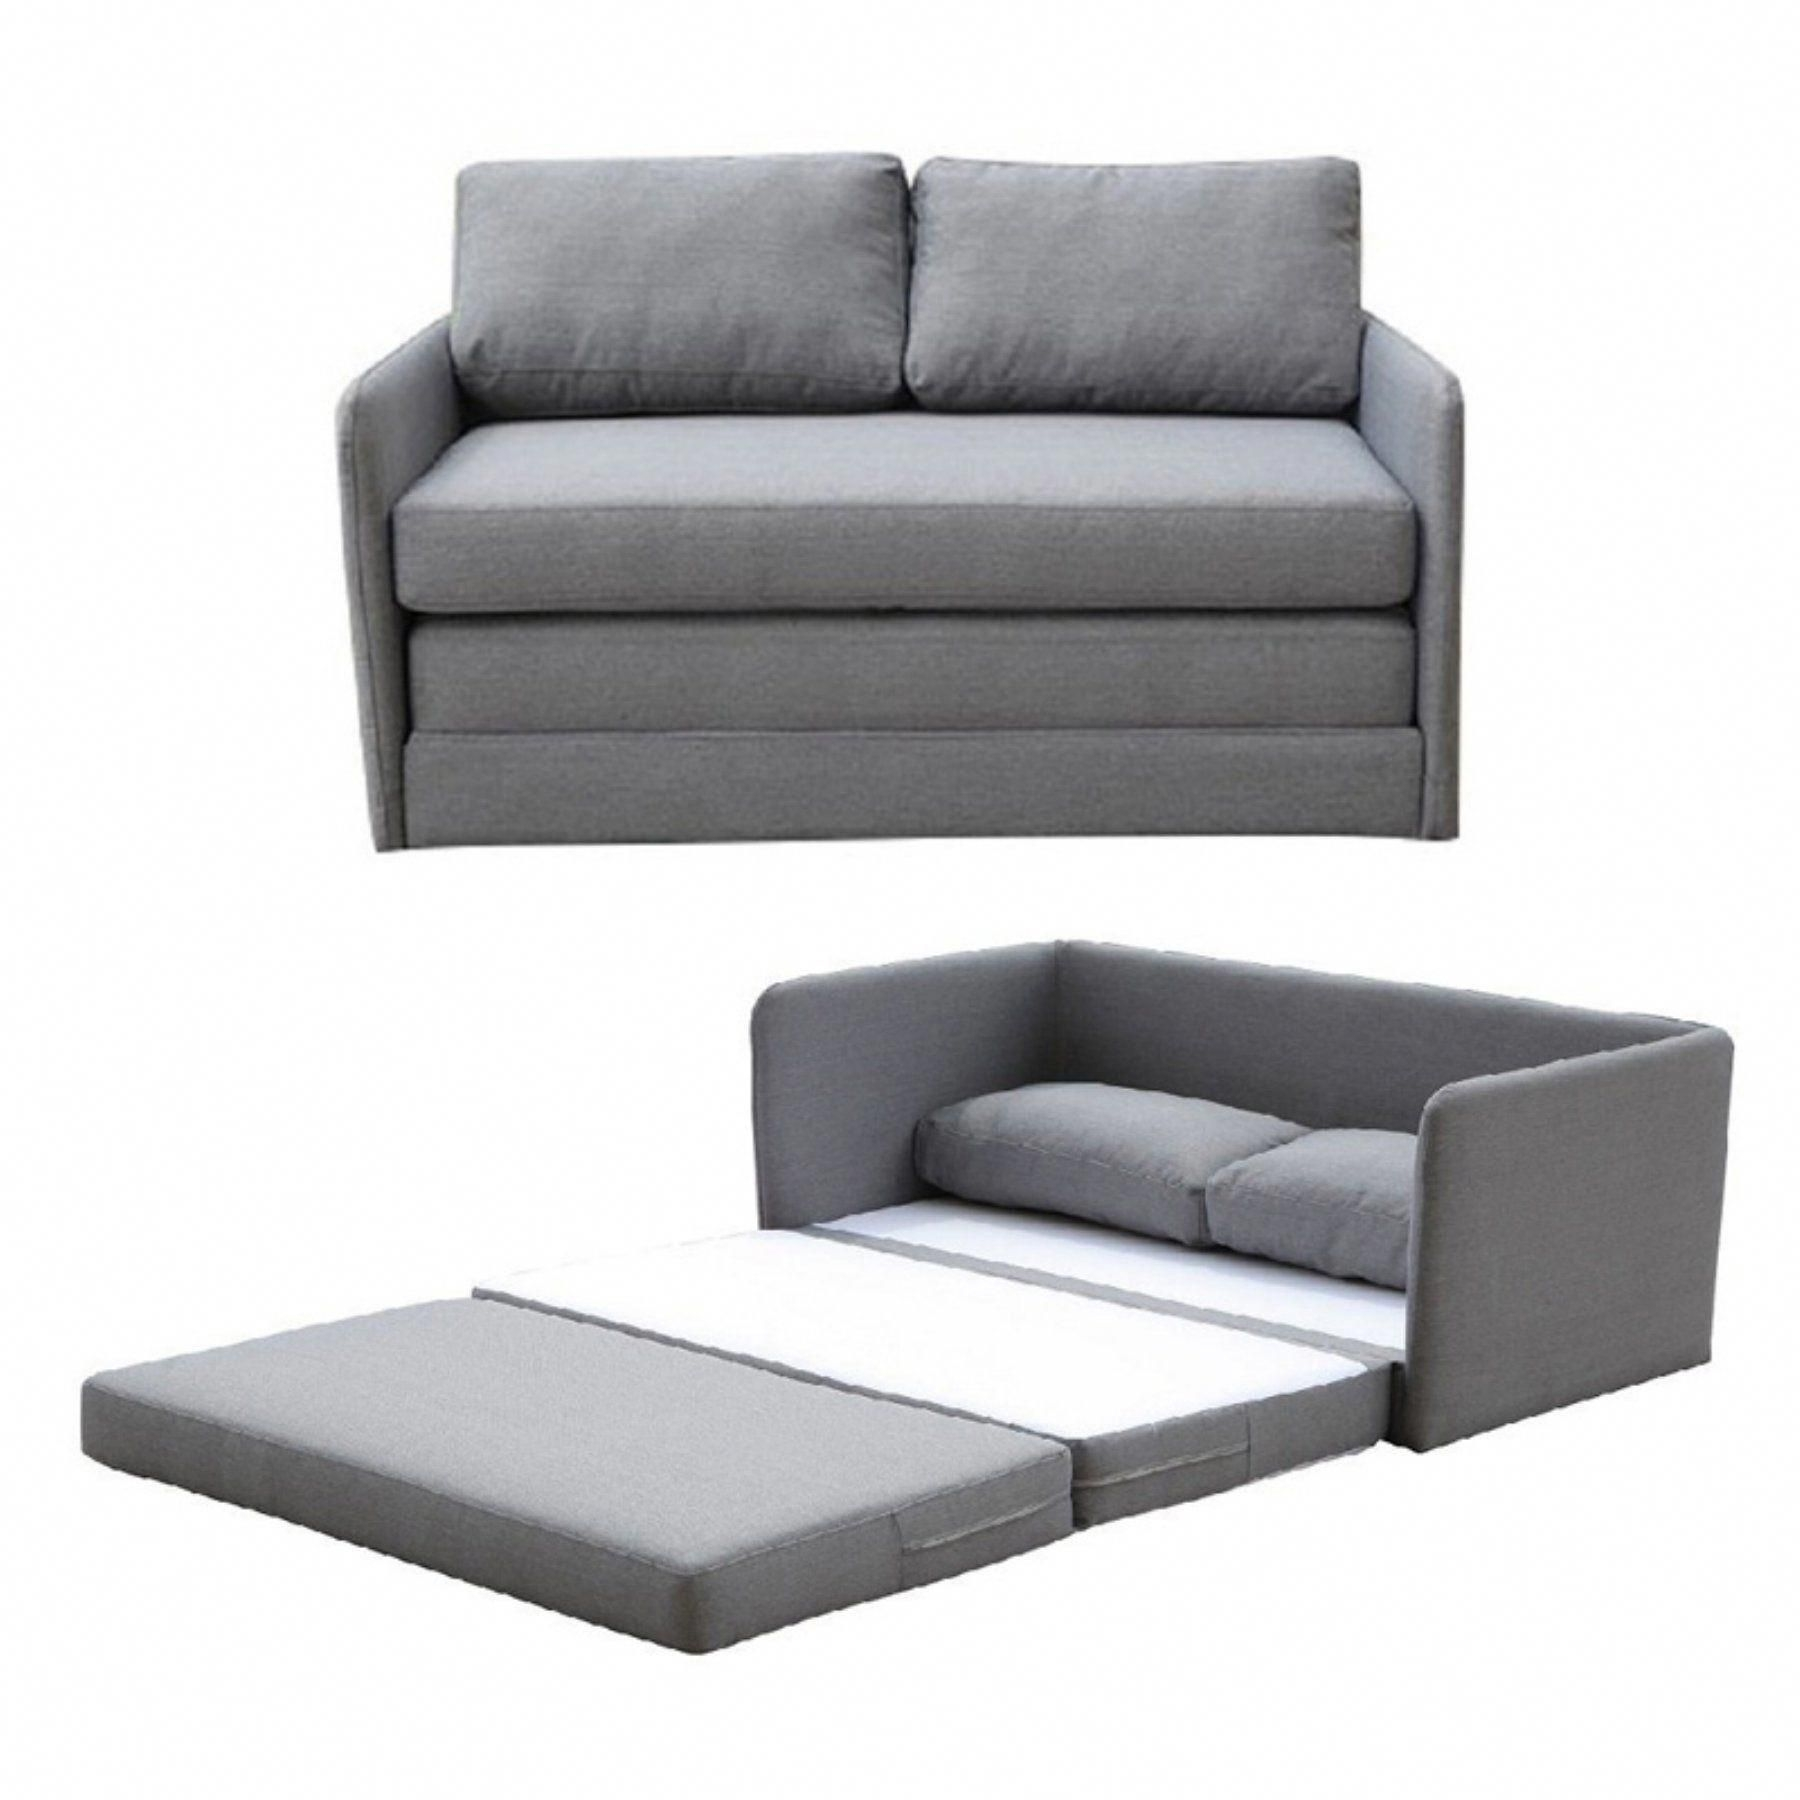 Picture of: Loveseat Hide A Bed You Ll Love In 2020 Visualhunt